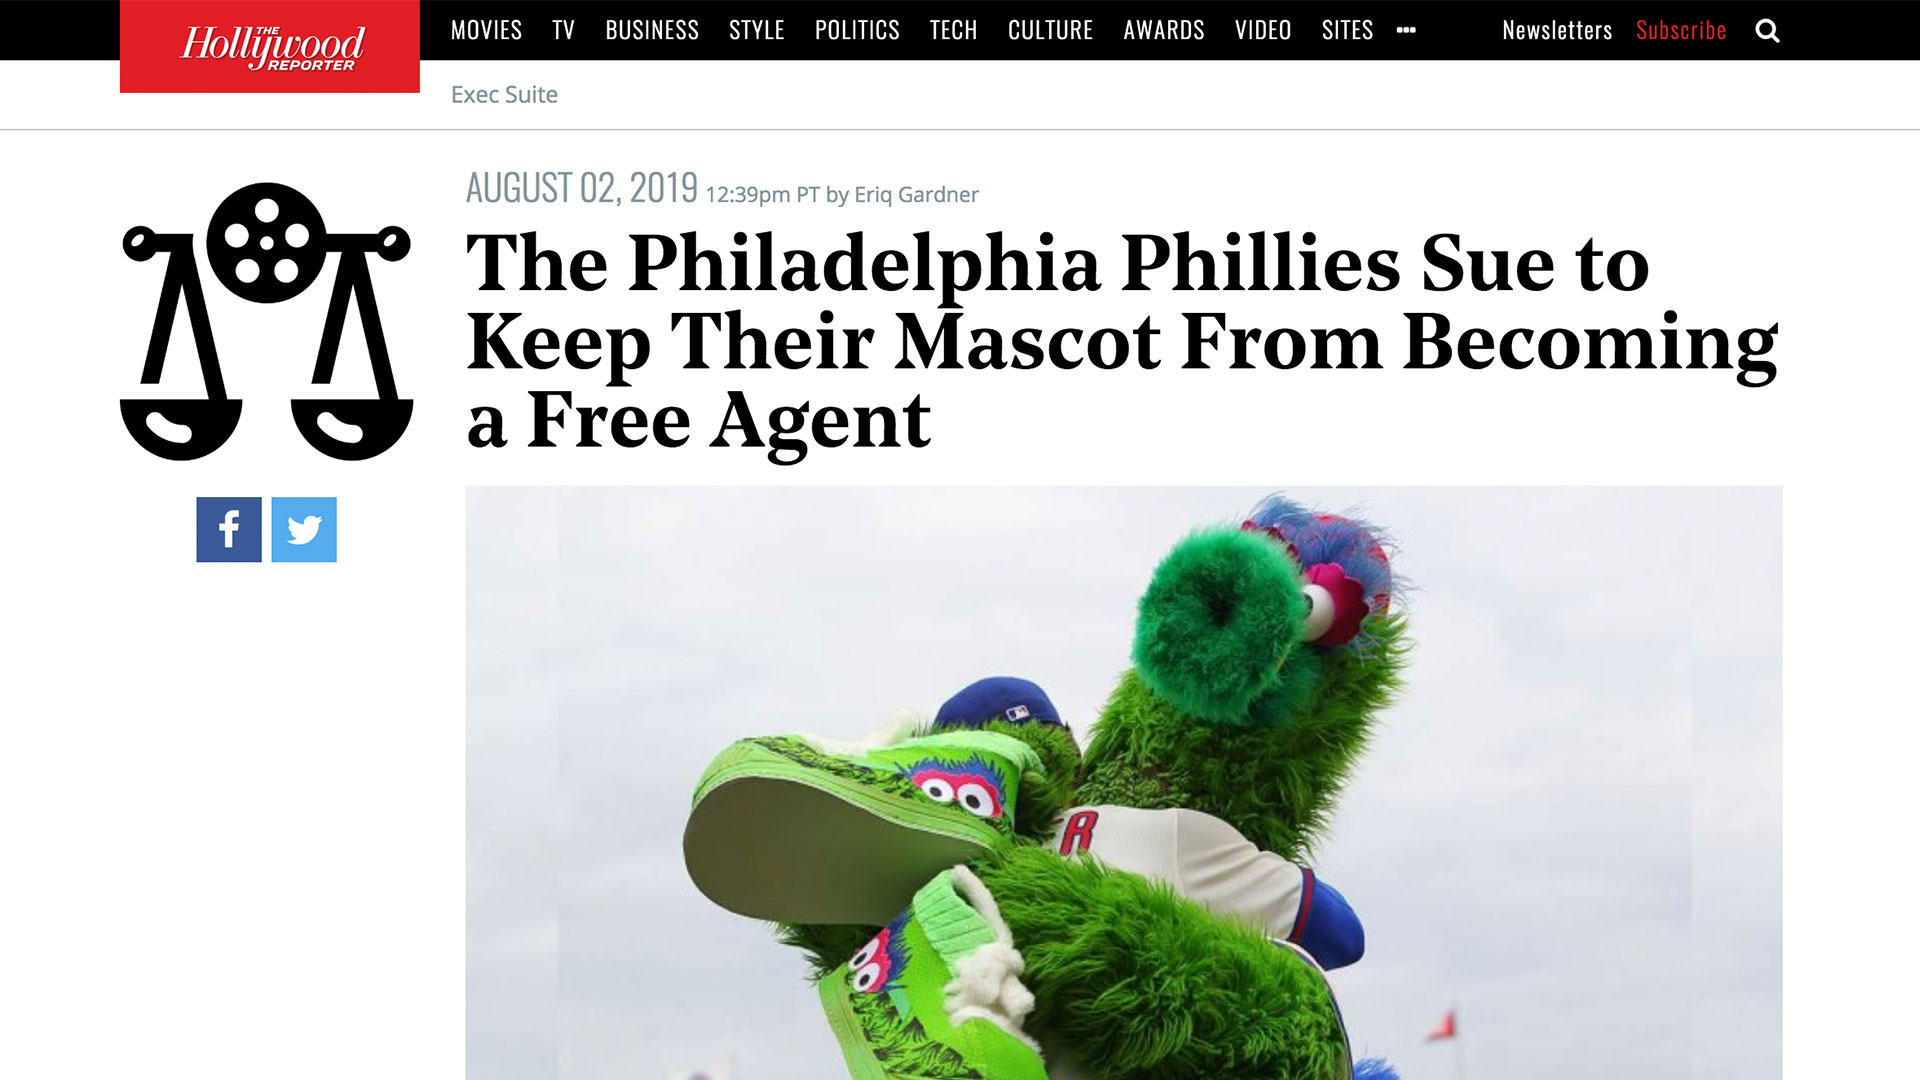 Fairness Rocks News The Philadelphia Phillies Sue to Keep Their Mascot From Becoming a Free Agent